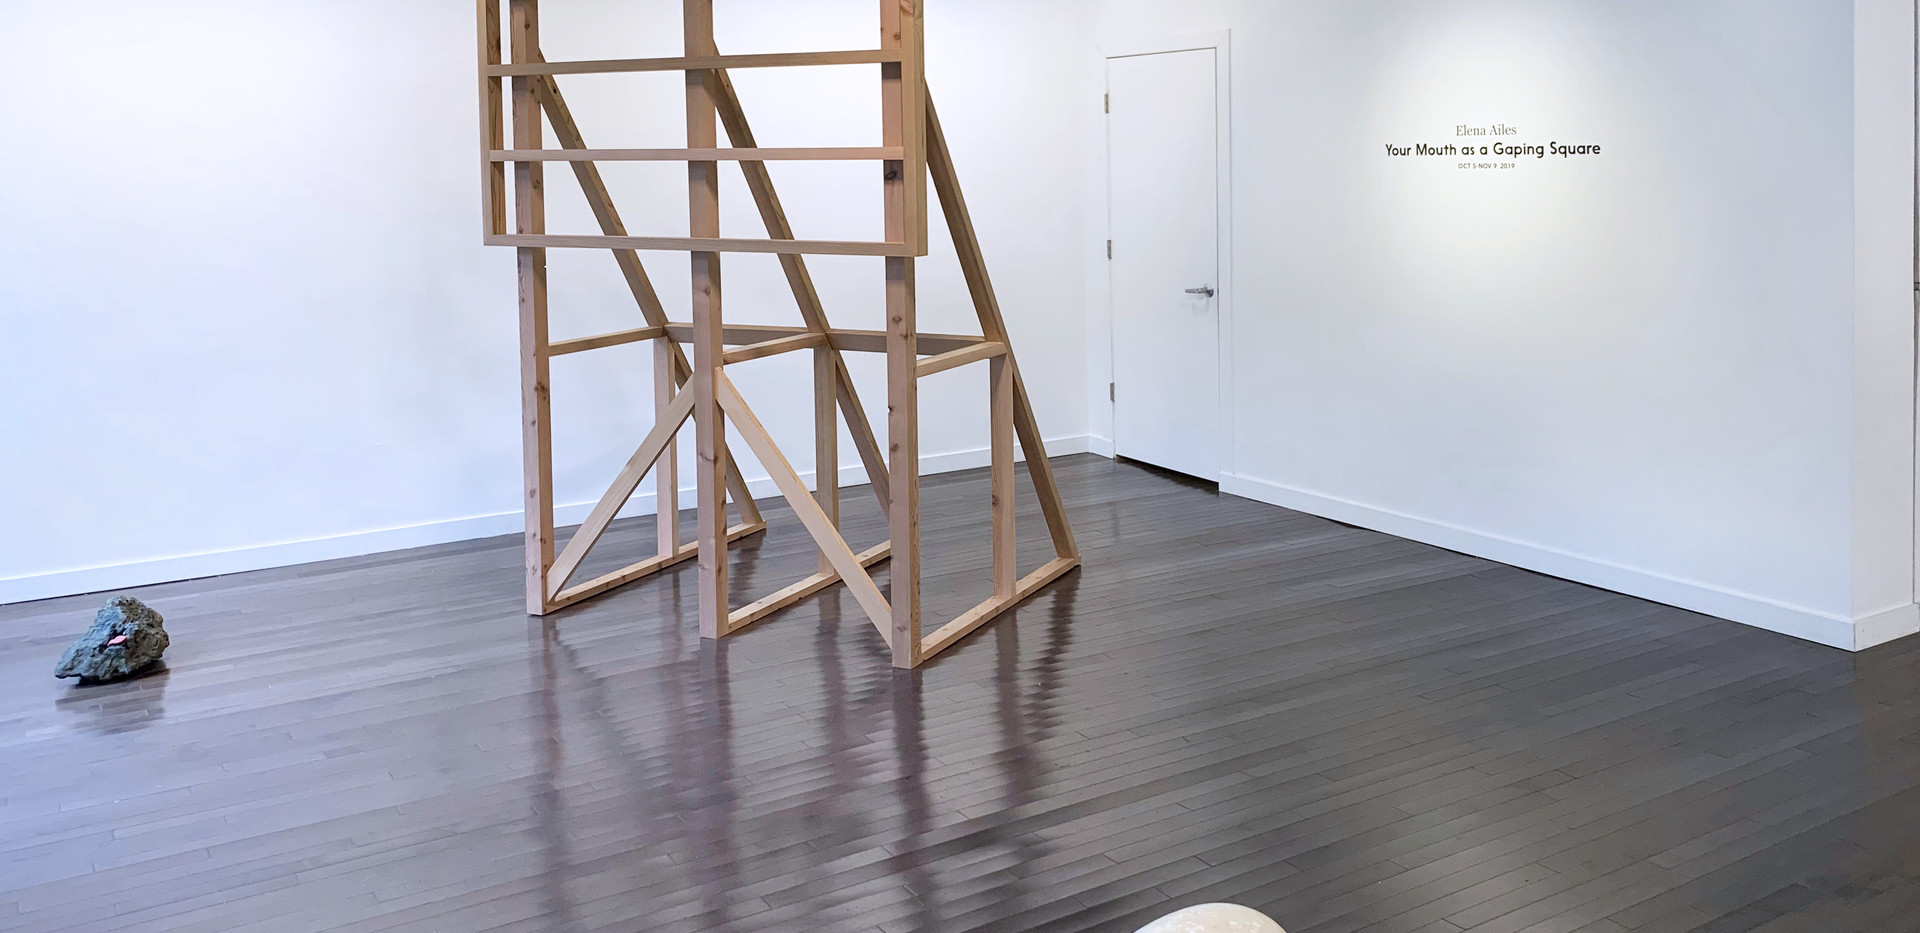 THE END WILL COME OUT OF MY MOUTH, 2019. Cedar, 7' x 5' x 4'